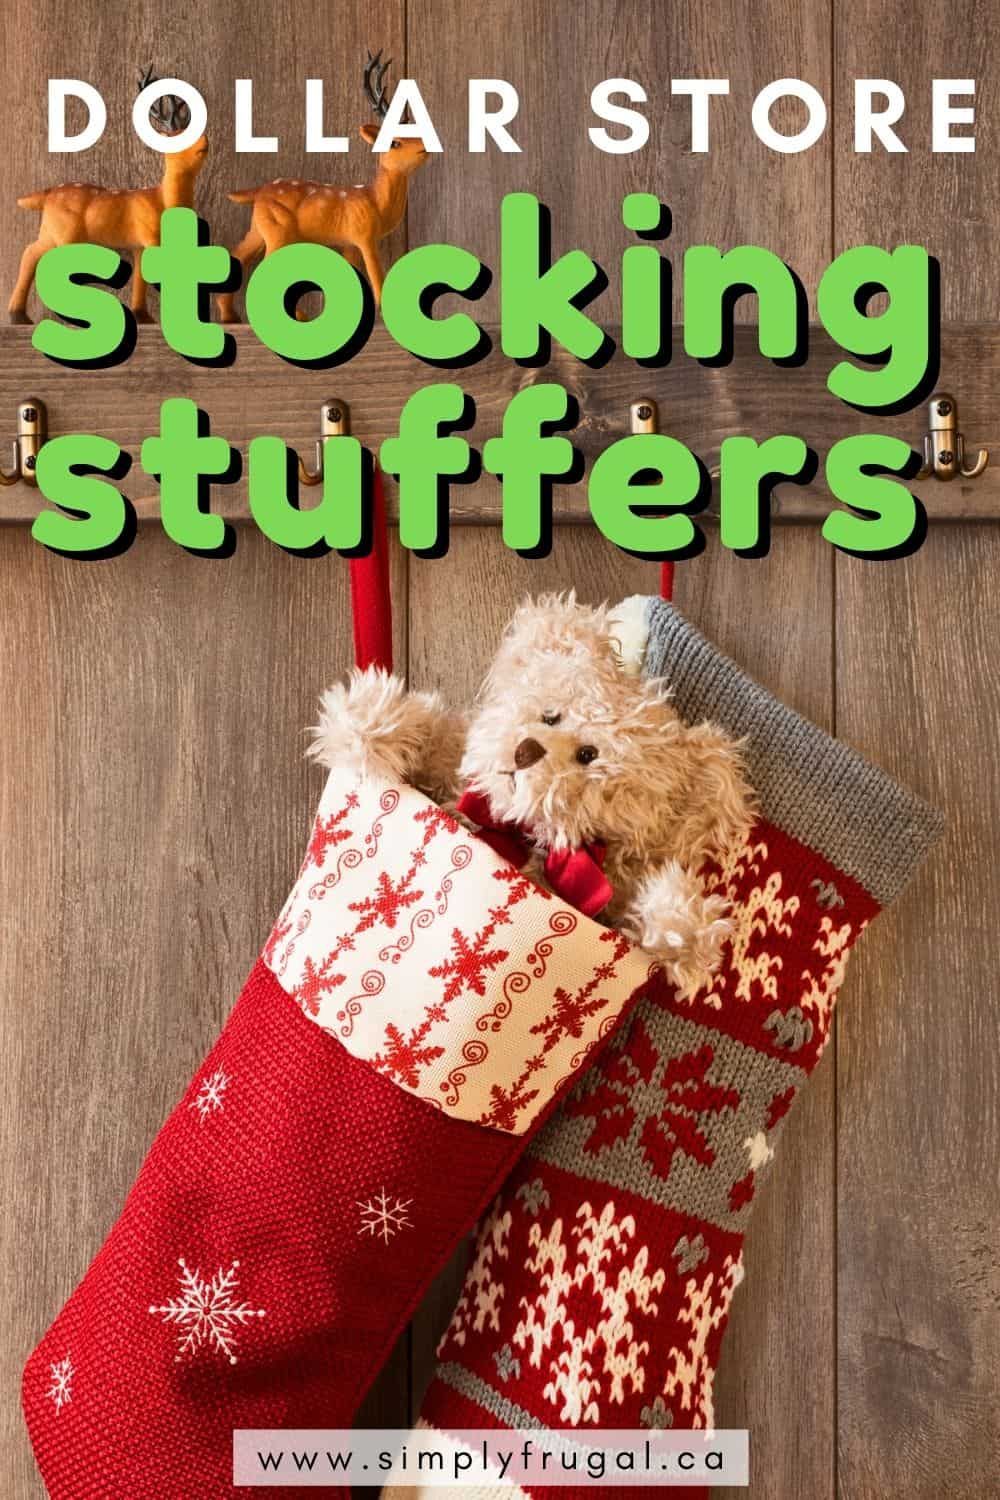 Stocking Stuffers don't have to be expensive! Dollar stores are a great place to look for fun surprises for everyone. Here are some of my favorites!